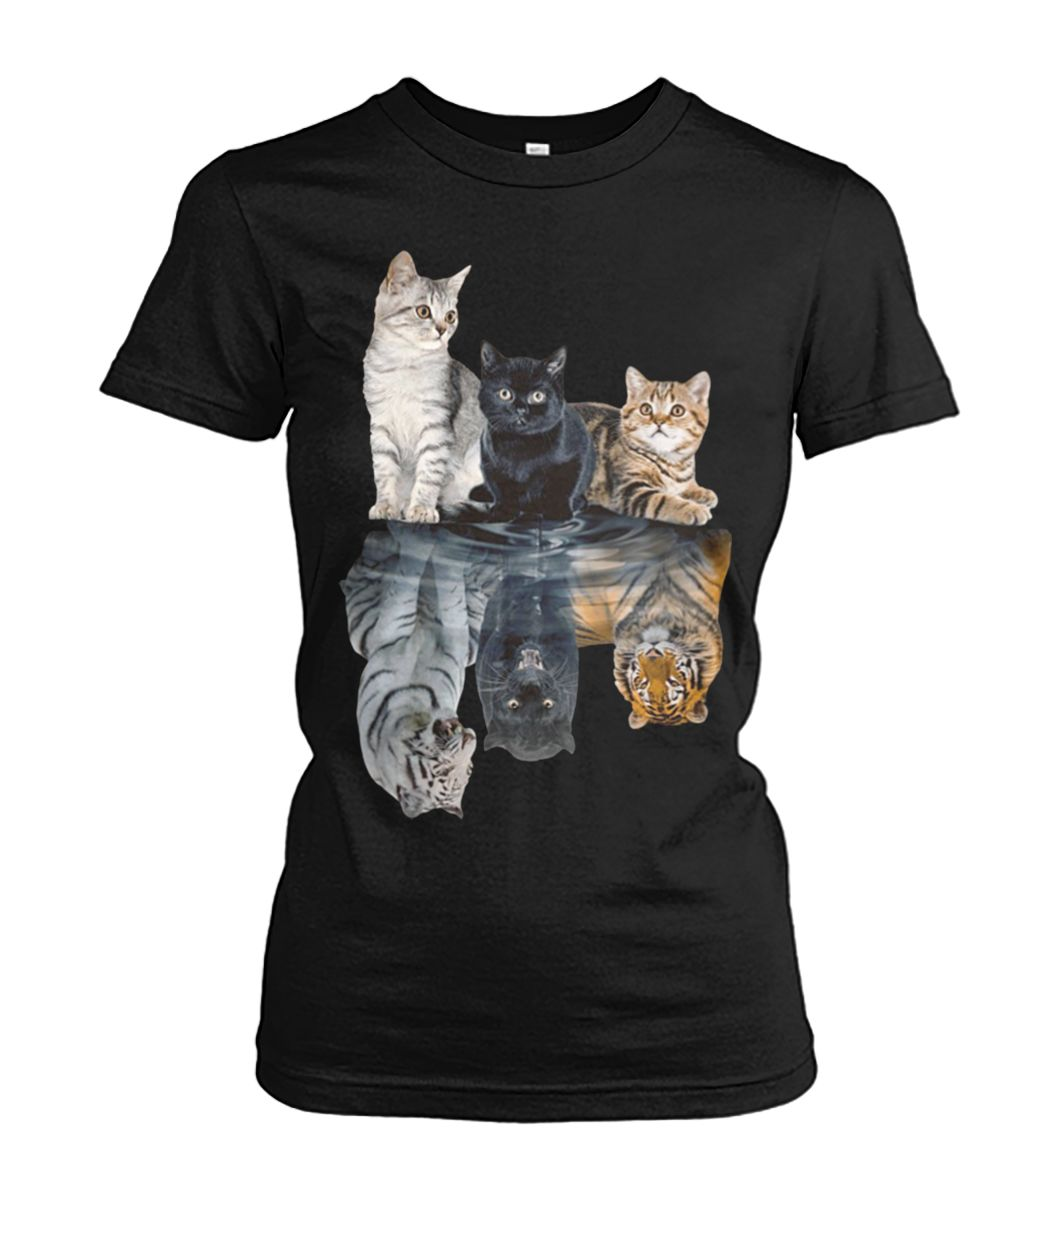 Cats reflection tigers women's crew tee